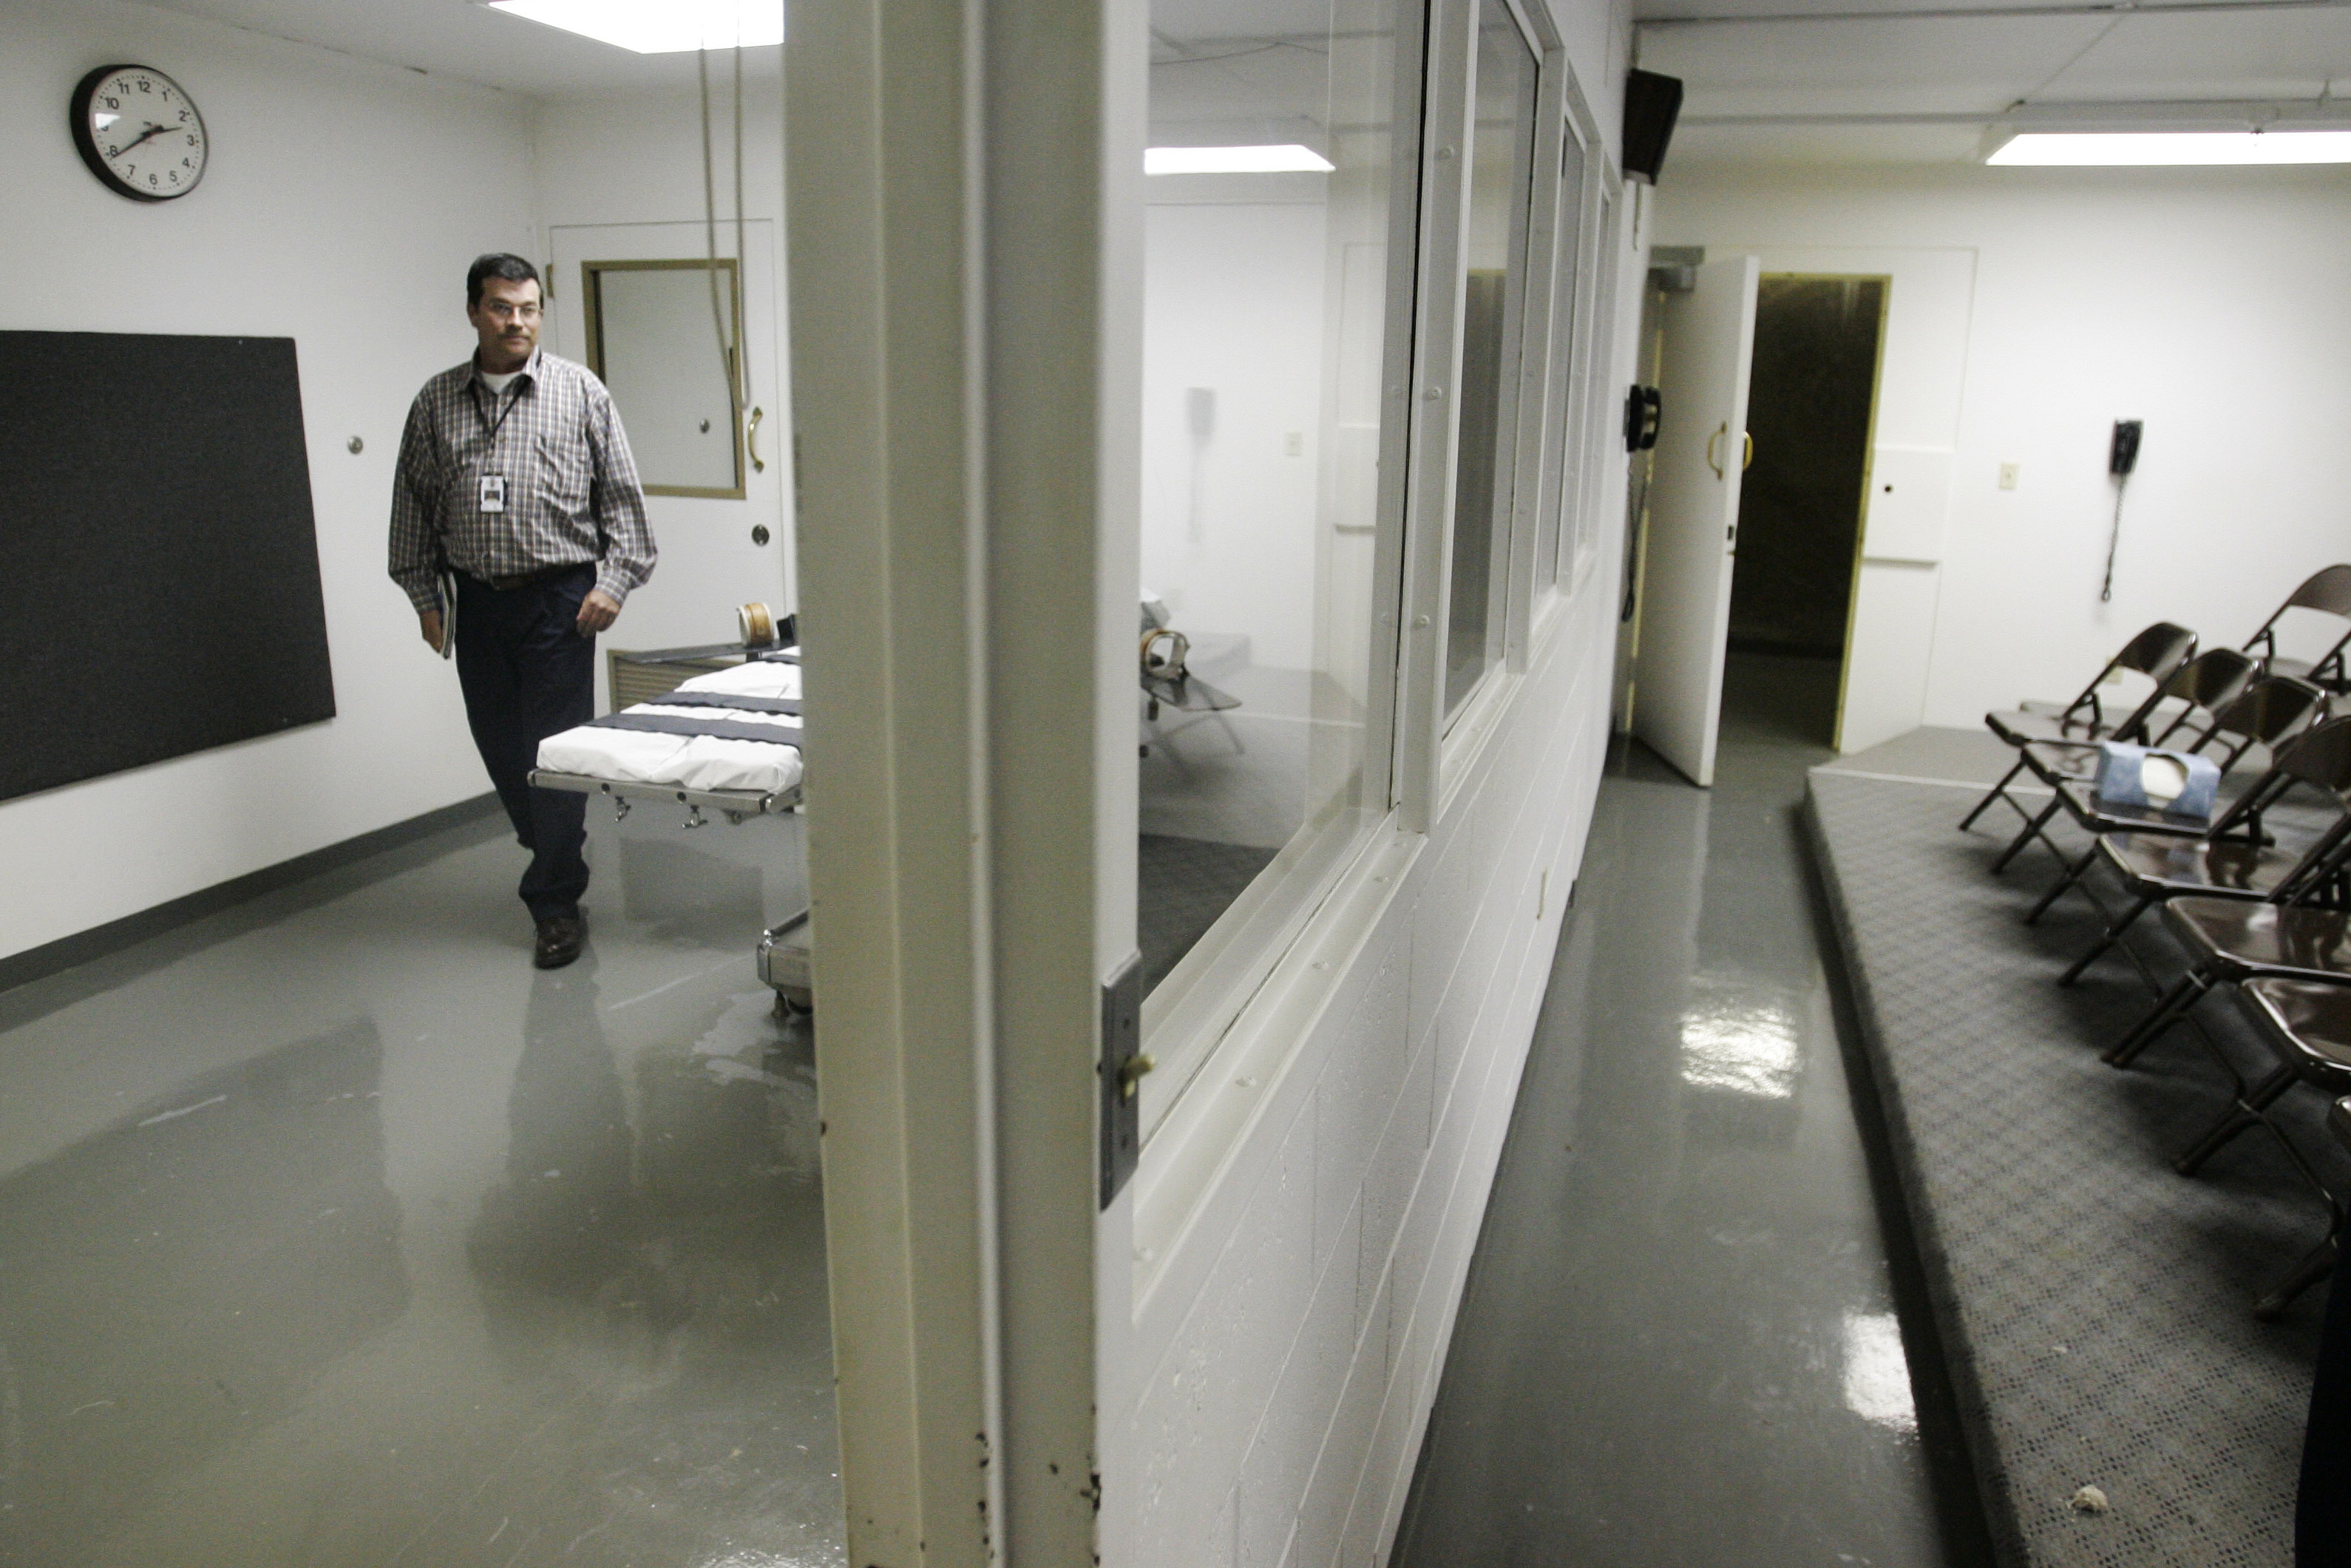 The execution chamber at the Oklahoma prison where Clayton Lockett was put to death in 2014